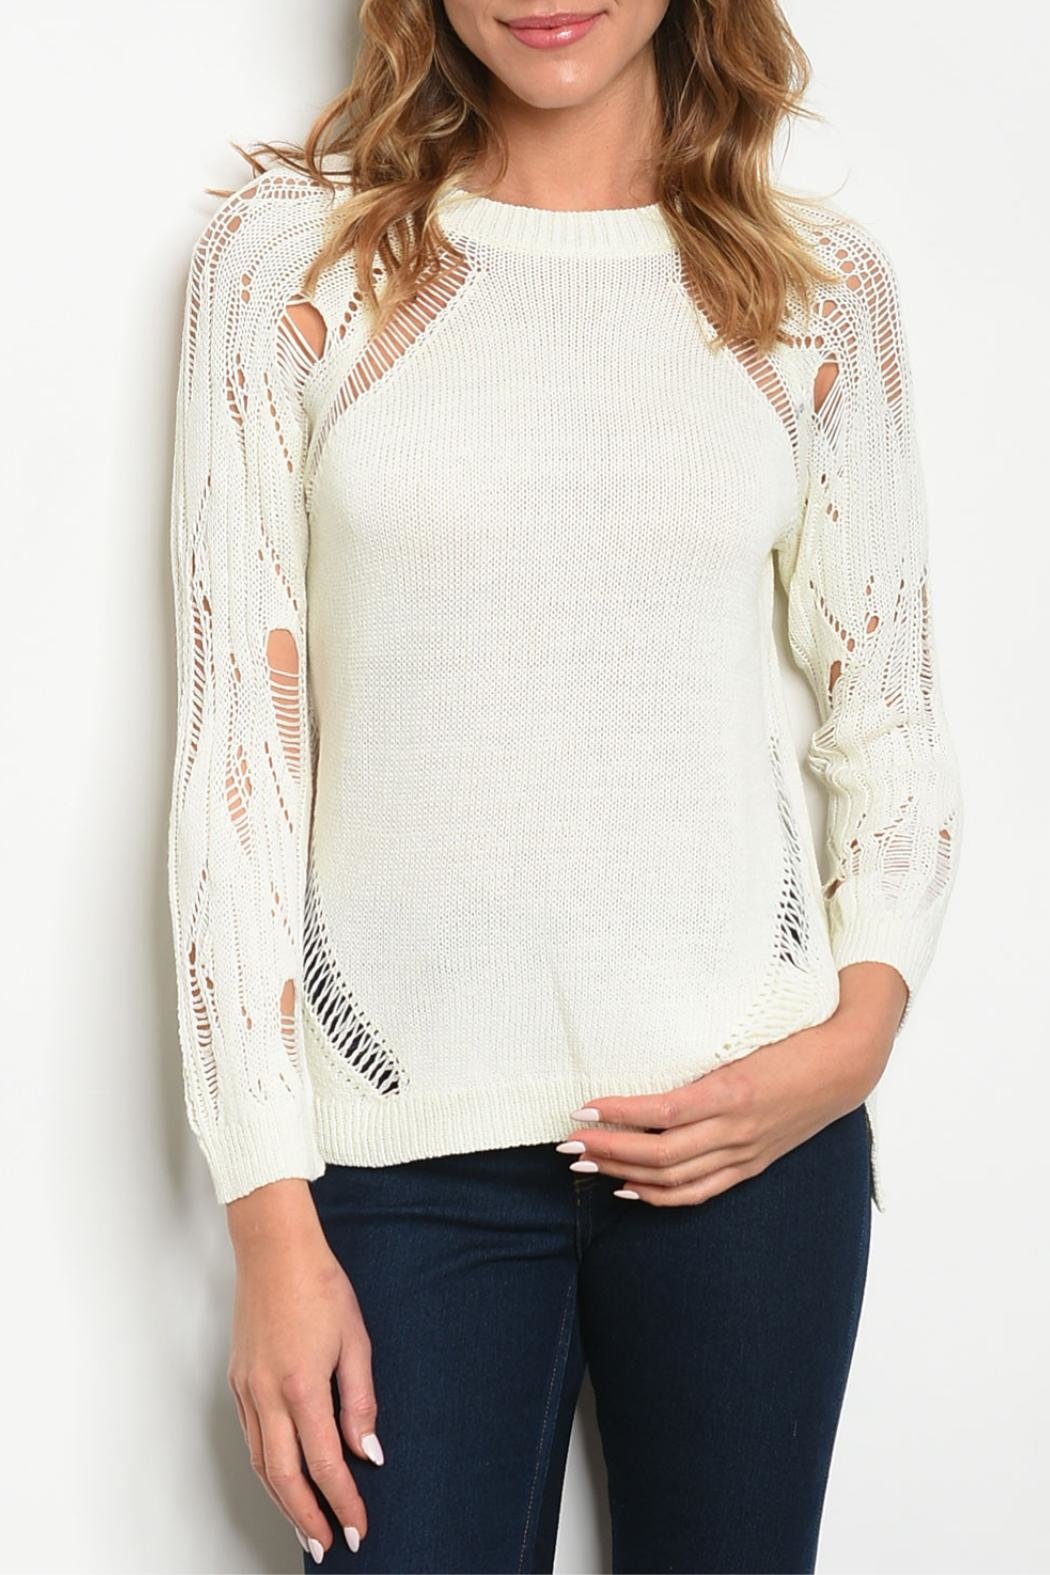 Papermoon Ivory Distressed Sweater - Main Image